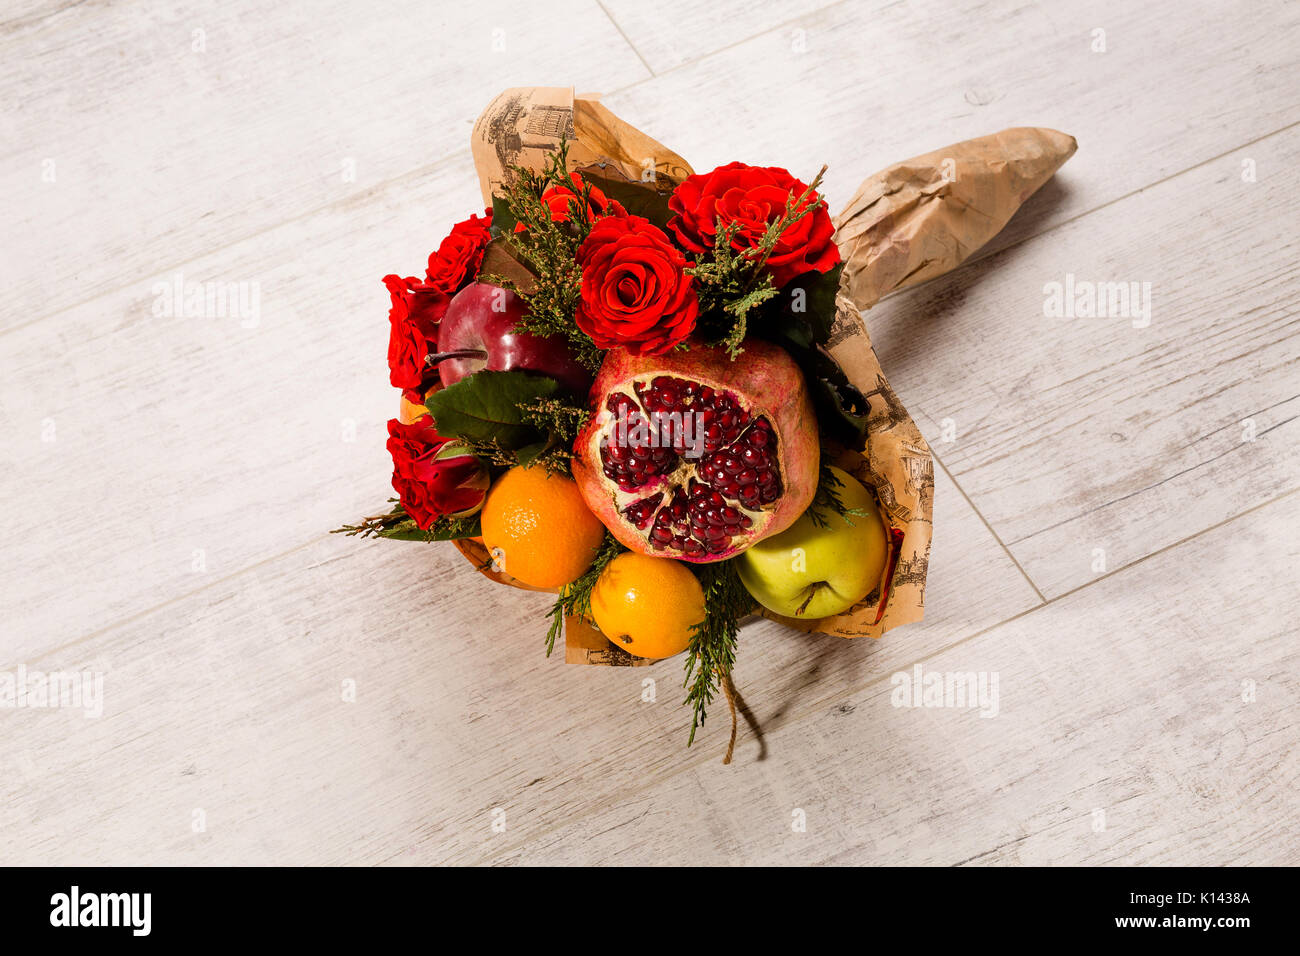 Prettily wrapped composition of red roses and fruits. - Stock Image